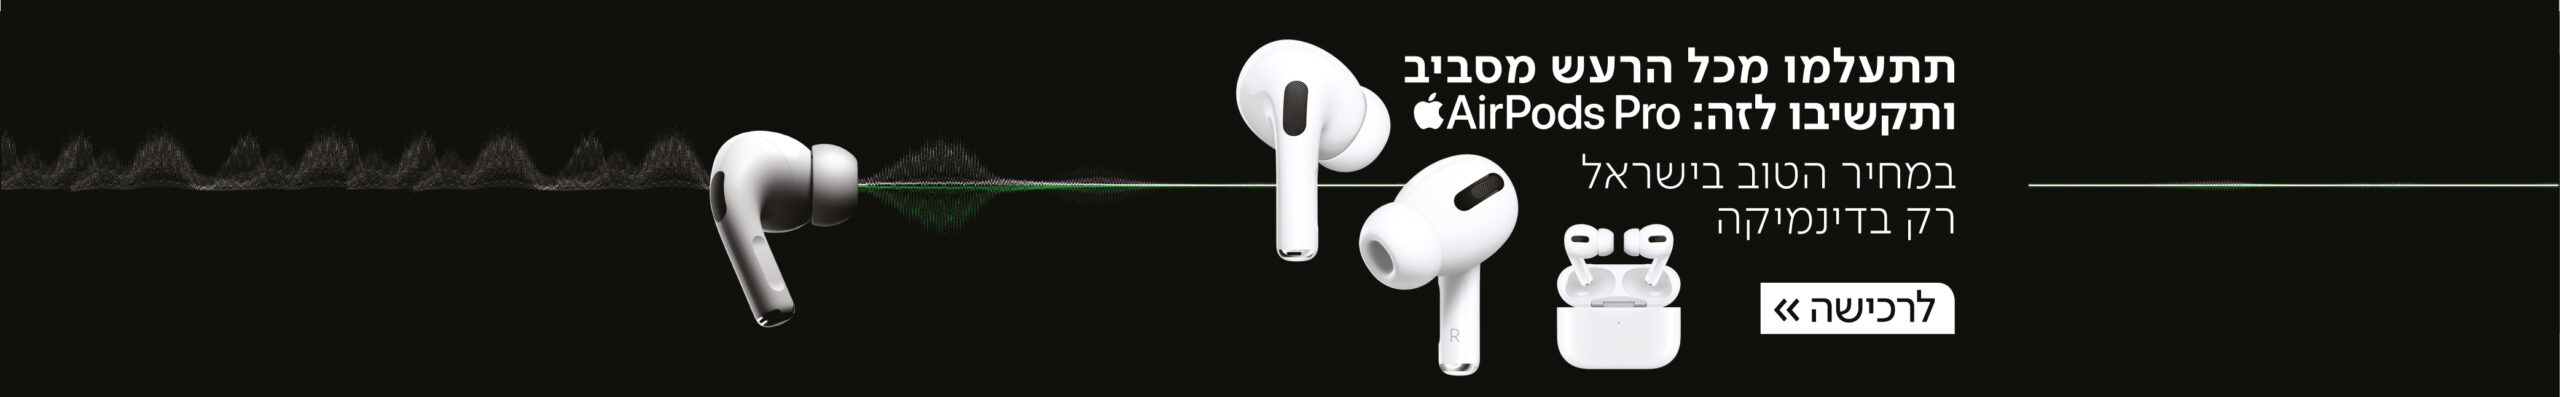 16514_AirPODs_PRO